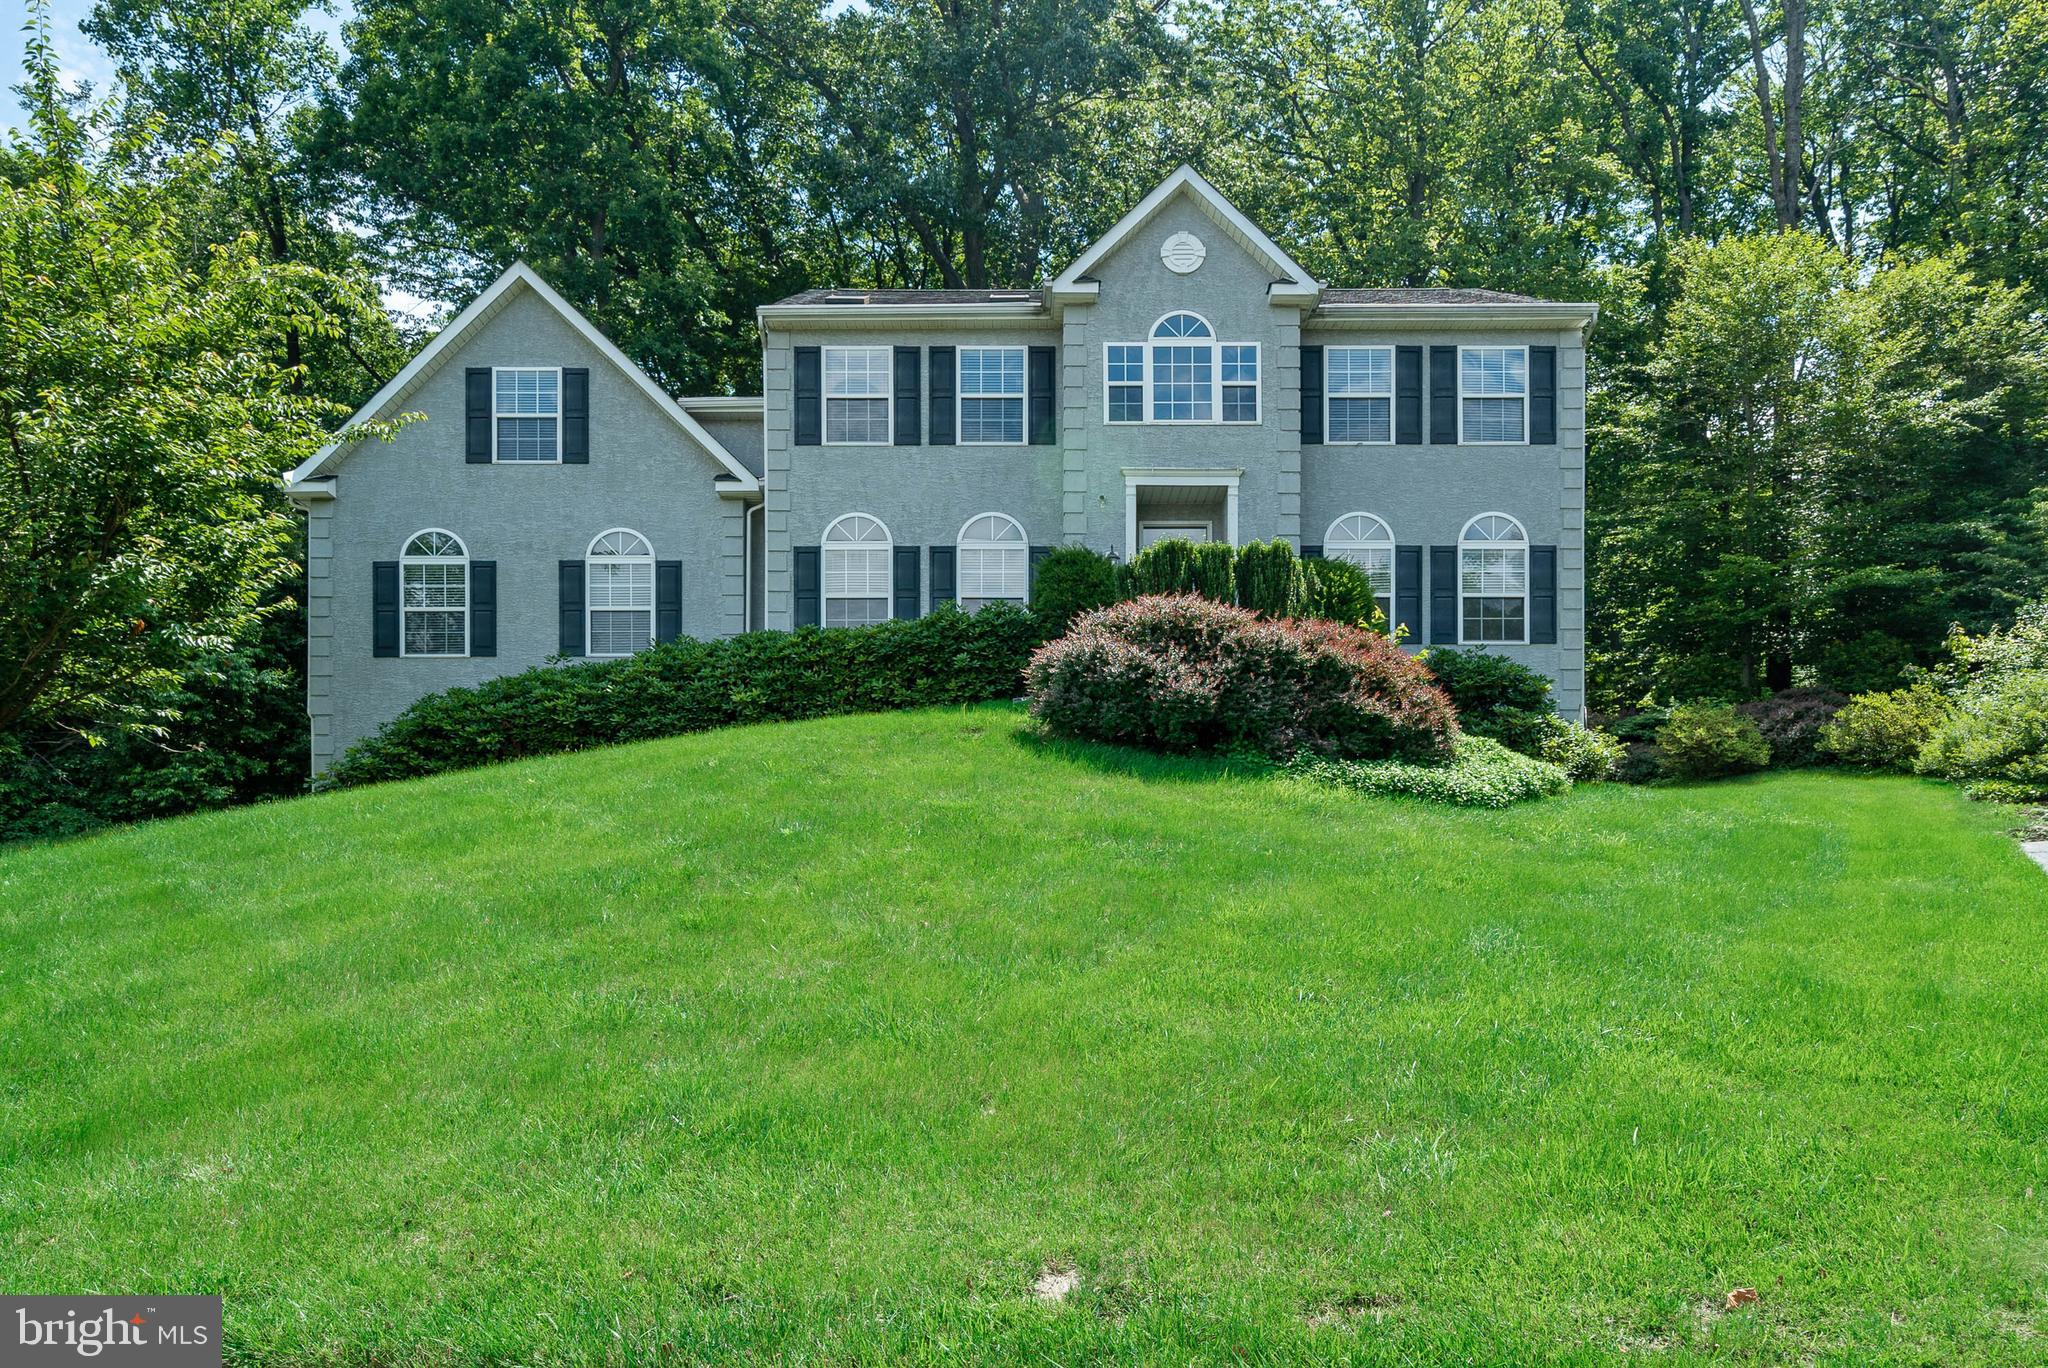 5 OVERLOOK COURT, NEWARK, DE 19713